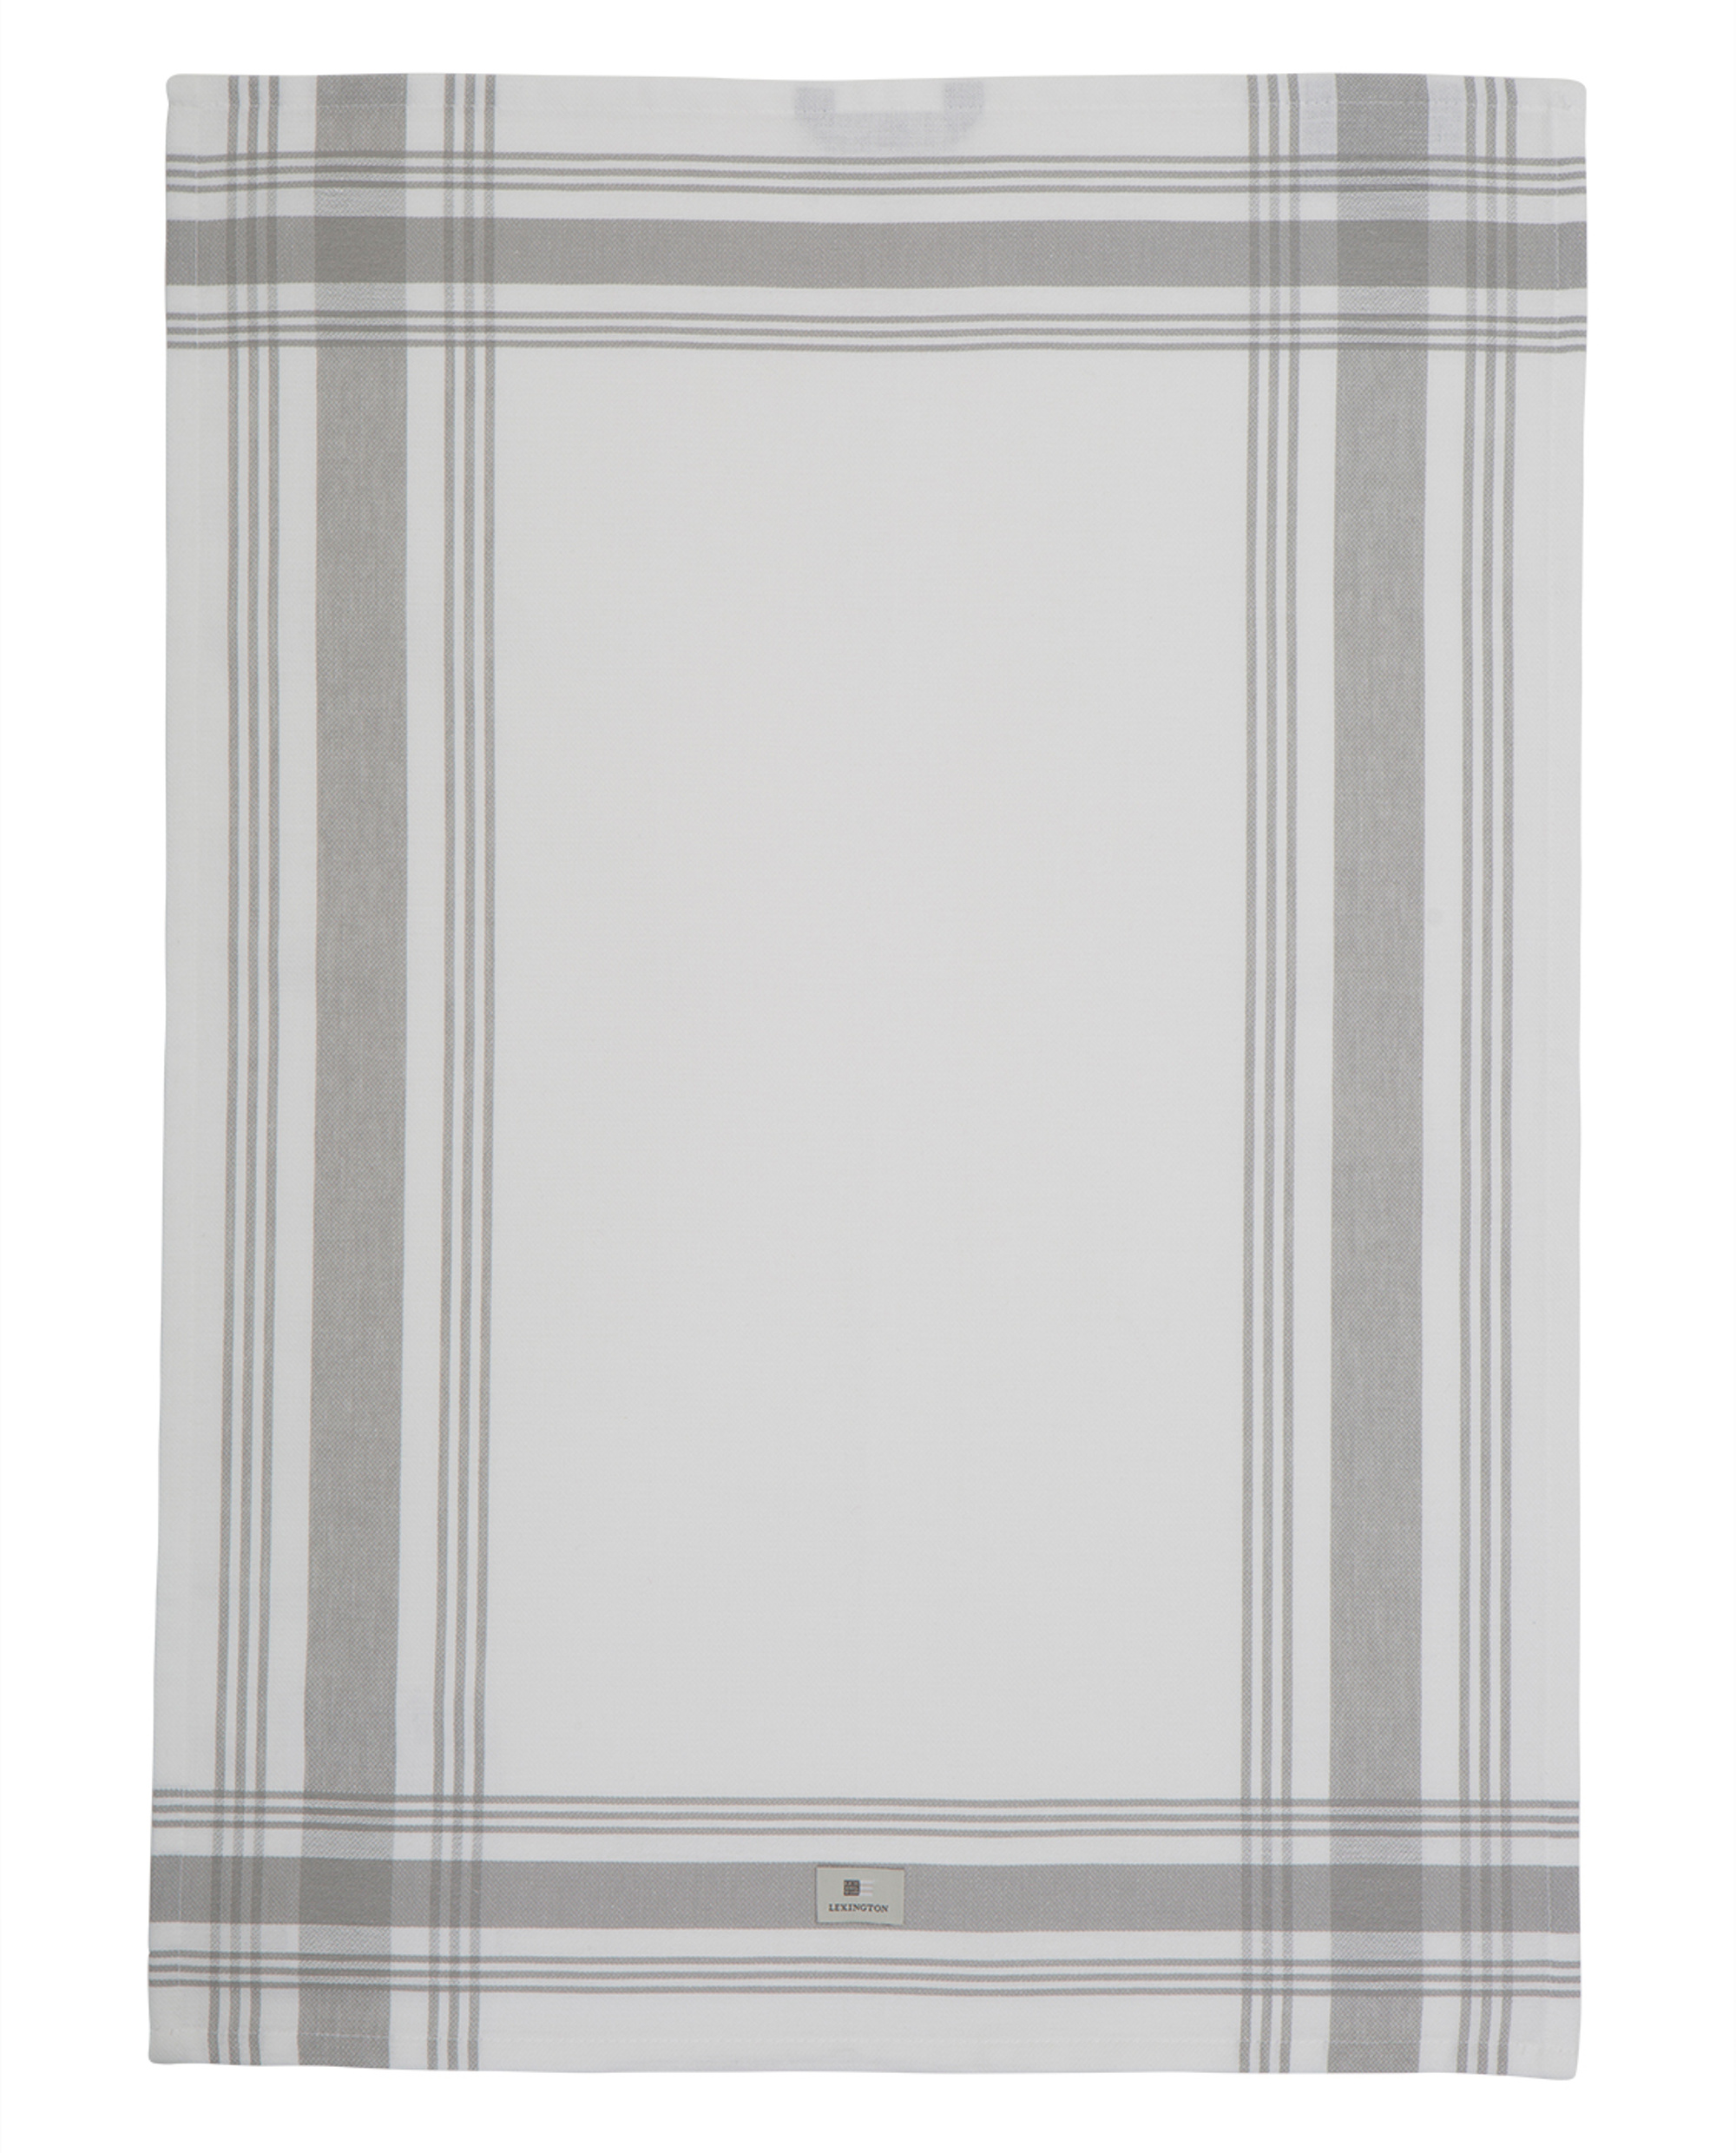 Hotel Framed Kitchen Towel, White/Gray